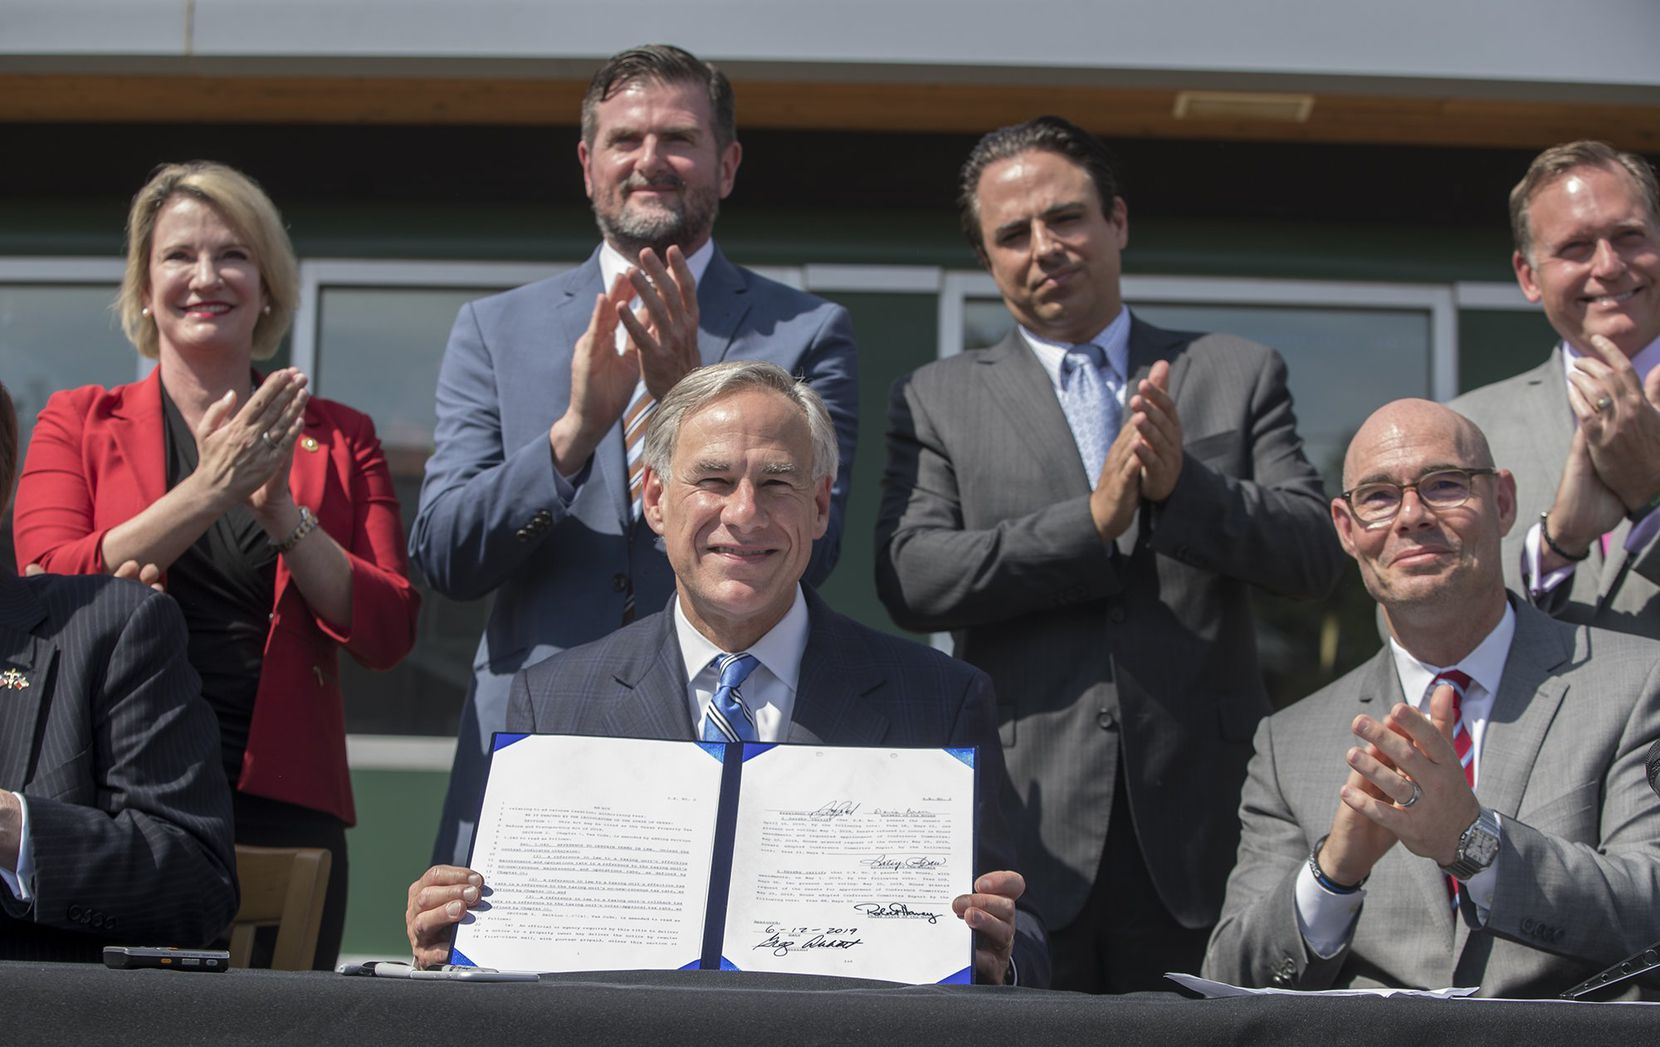 Governor Greg Abbott outside of Wally's Burger Express in  Austin is surrounded by state legislators as he signs a bill that limits property tax growth, Wednesday, June 12, 2019.